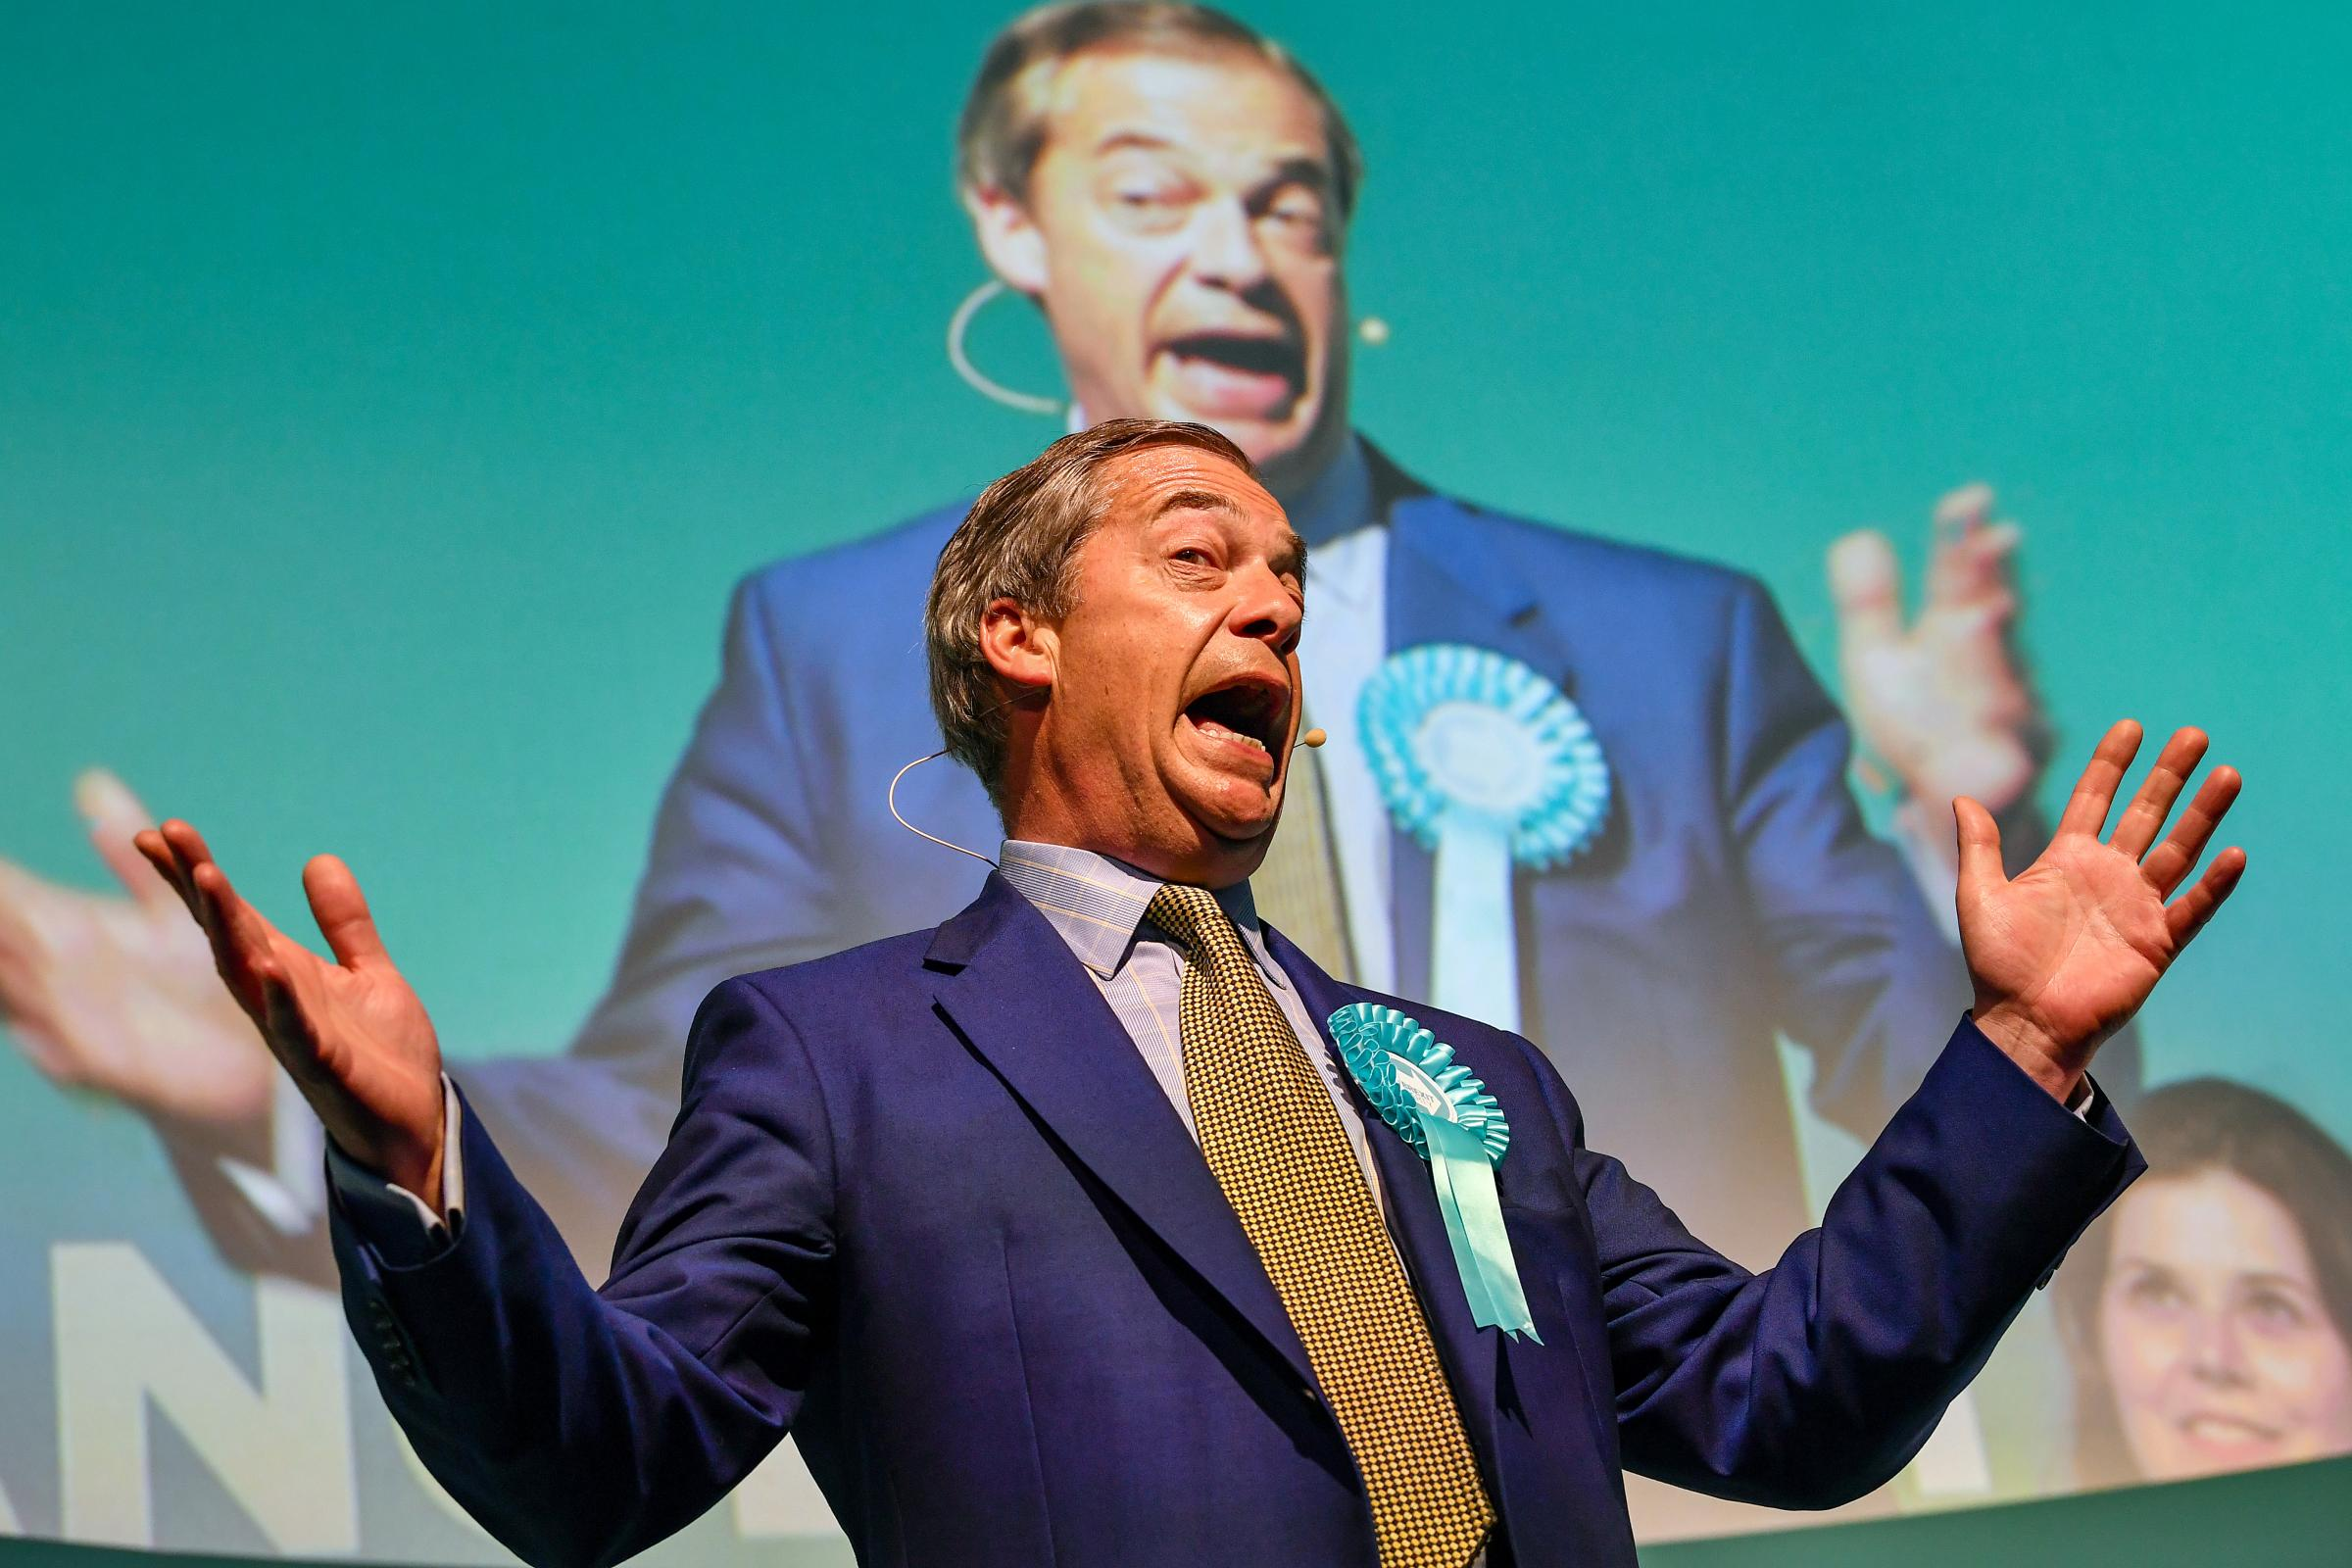 Incompetent Labour and Tories have left the door wide open for Farage